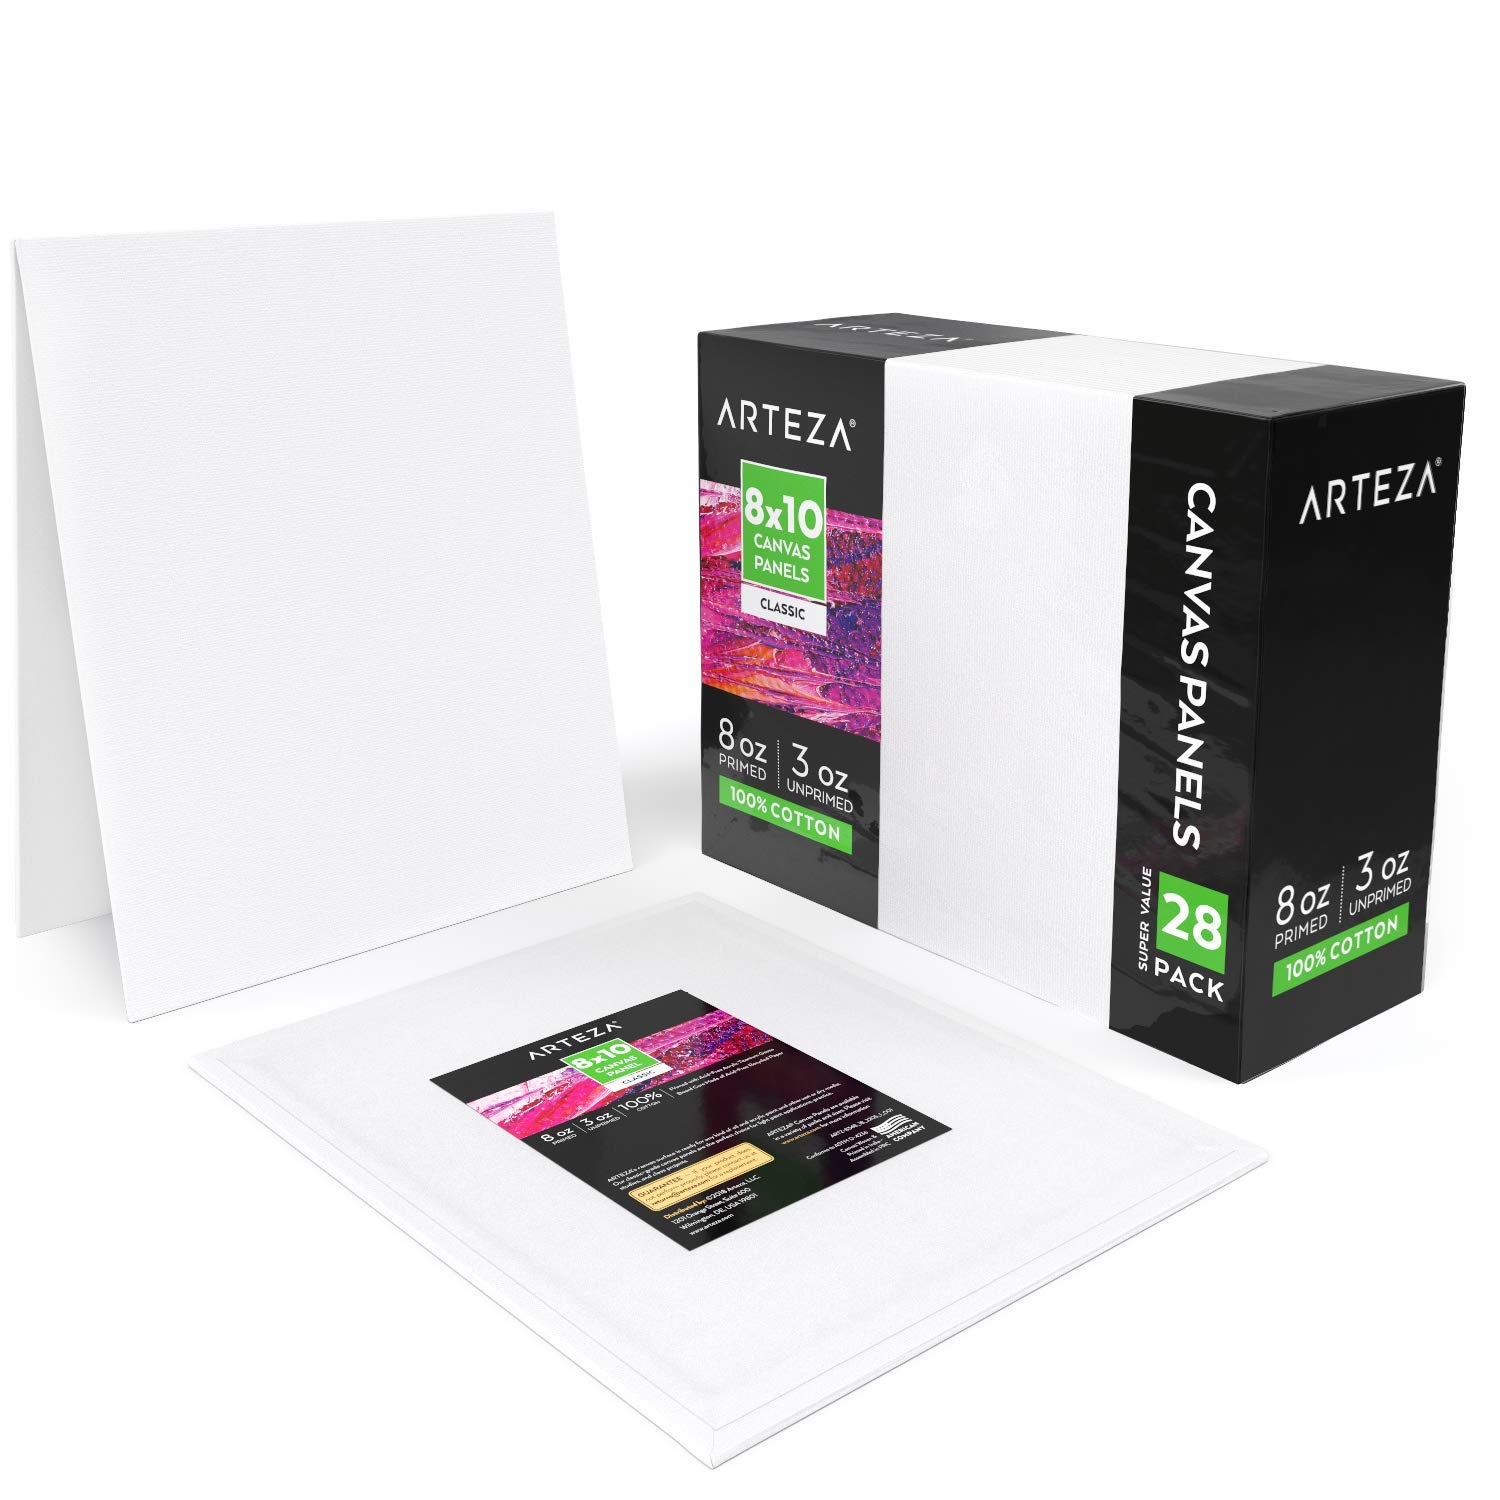 Arteza Painting Canvas Panels, 8x10, Pack of 28, Primed White, 100% Cotton with Recycled Board Core, for Acrylic, Oil, Other Wet Or Dry Art Media, for Artists, Hobby Painters, Kids